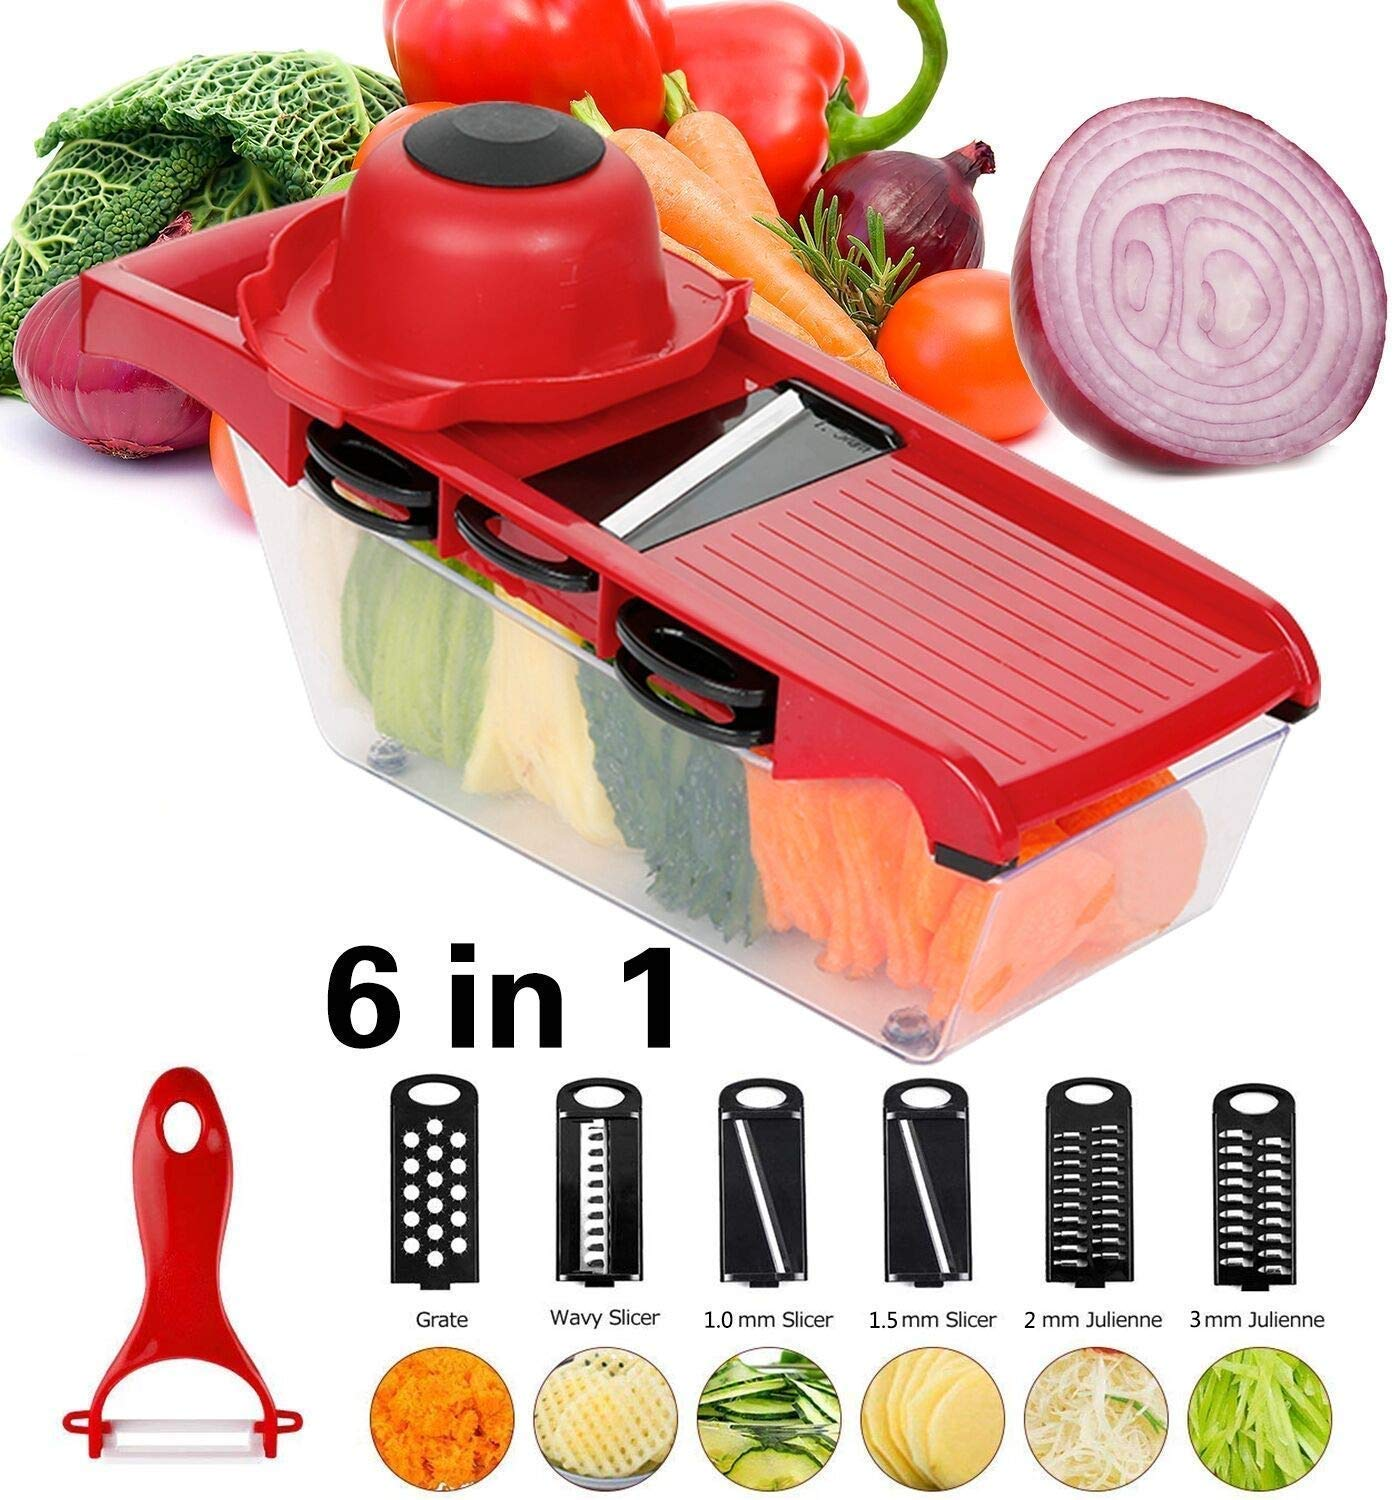 Puralast Mandoline Slicer with 6 Interchangeable Stainless Steel Spiralizer Vegetable Slicer & cutter by Puralast